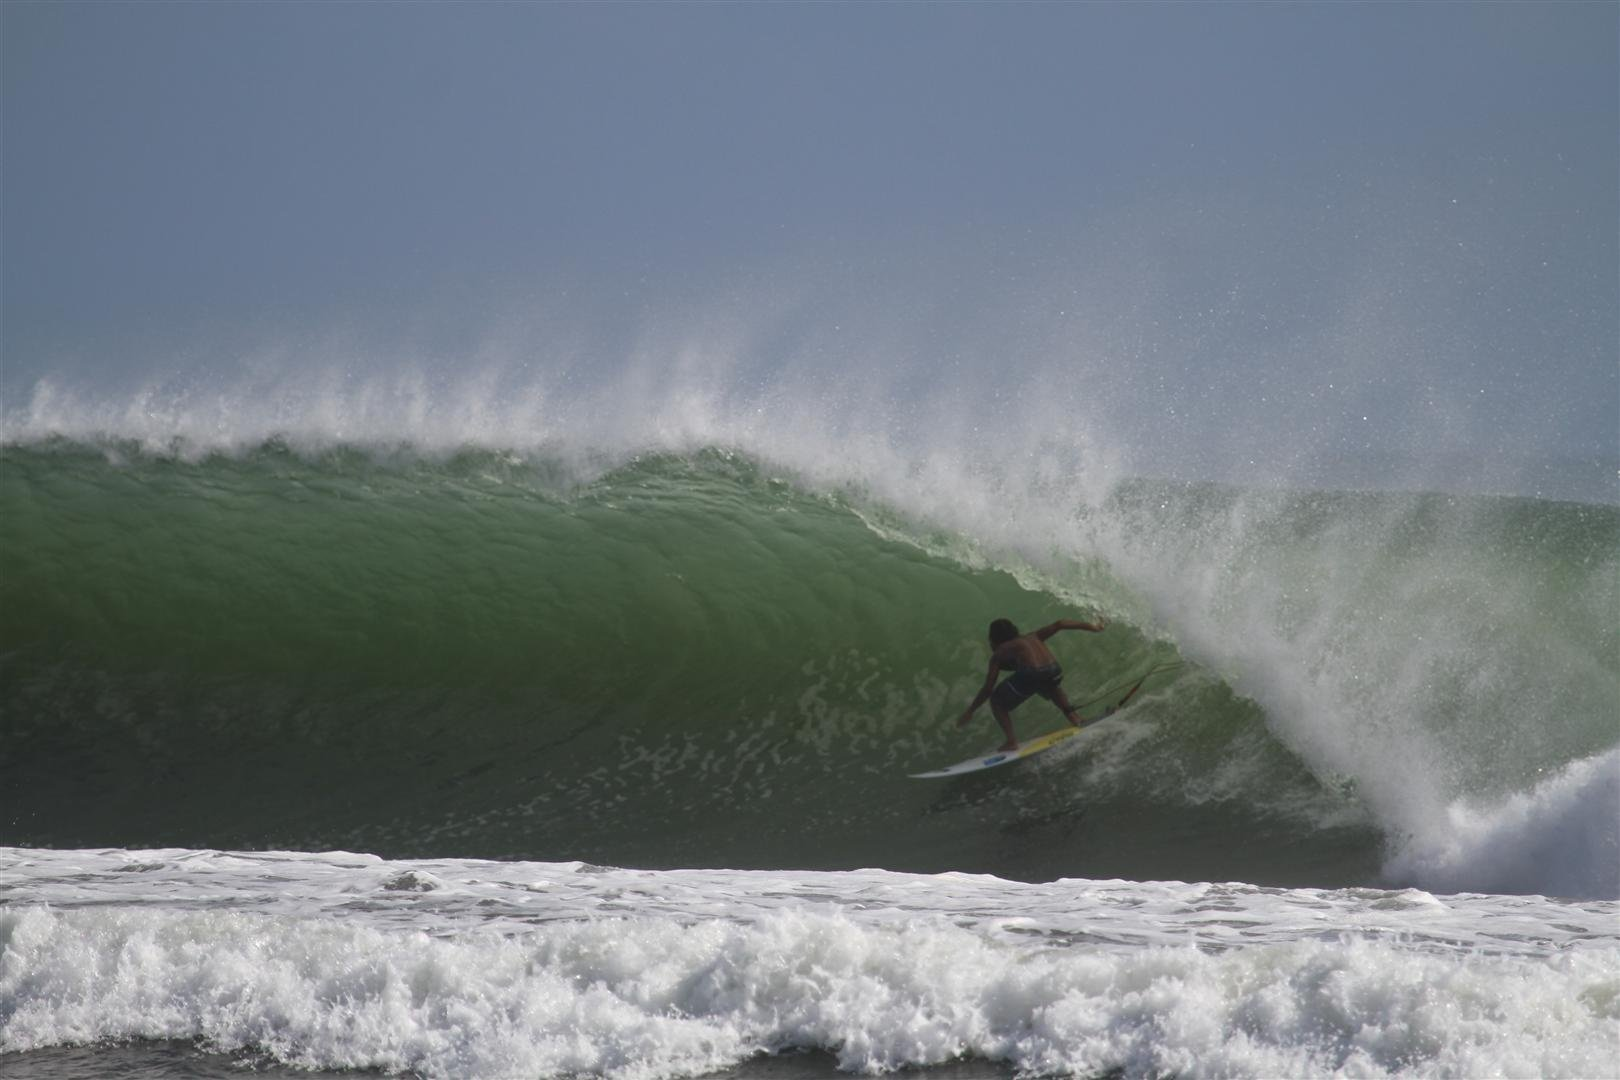 davidt's photo of Padma